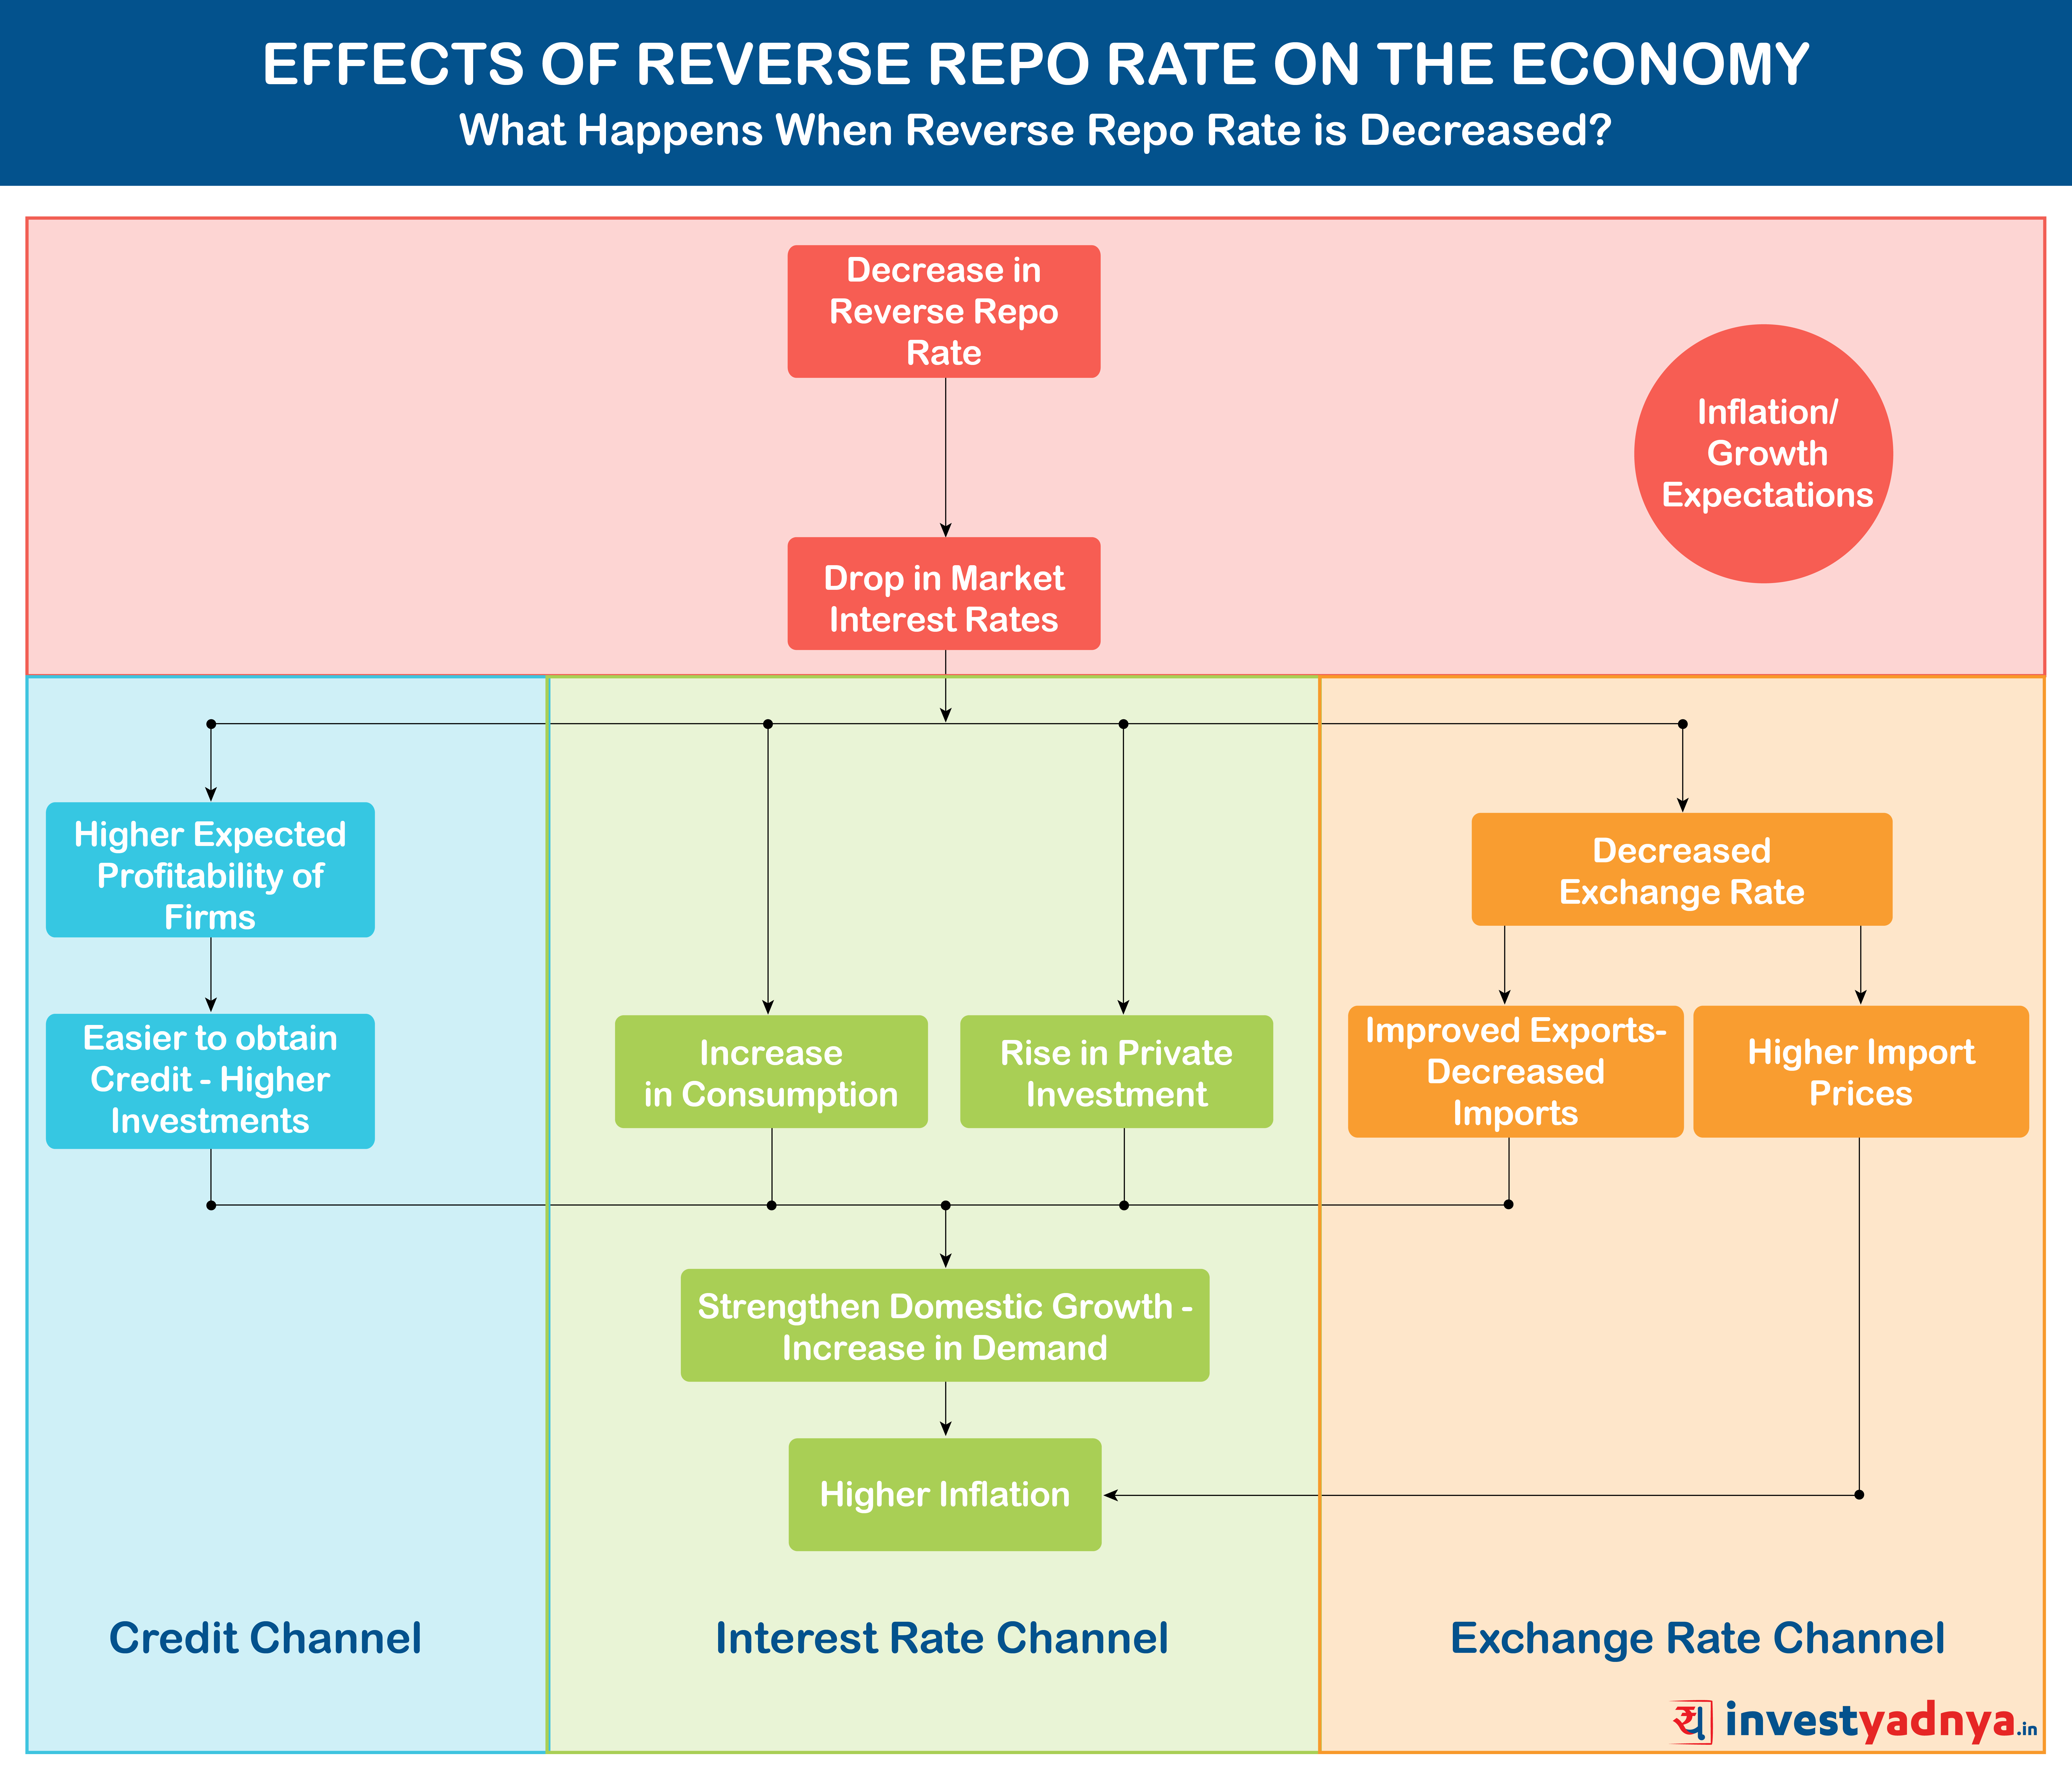 Effects of Reverse Repo Rate on Economy